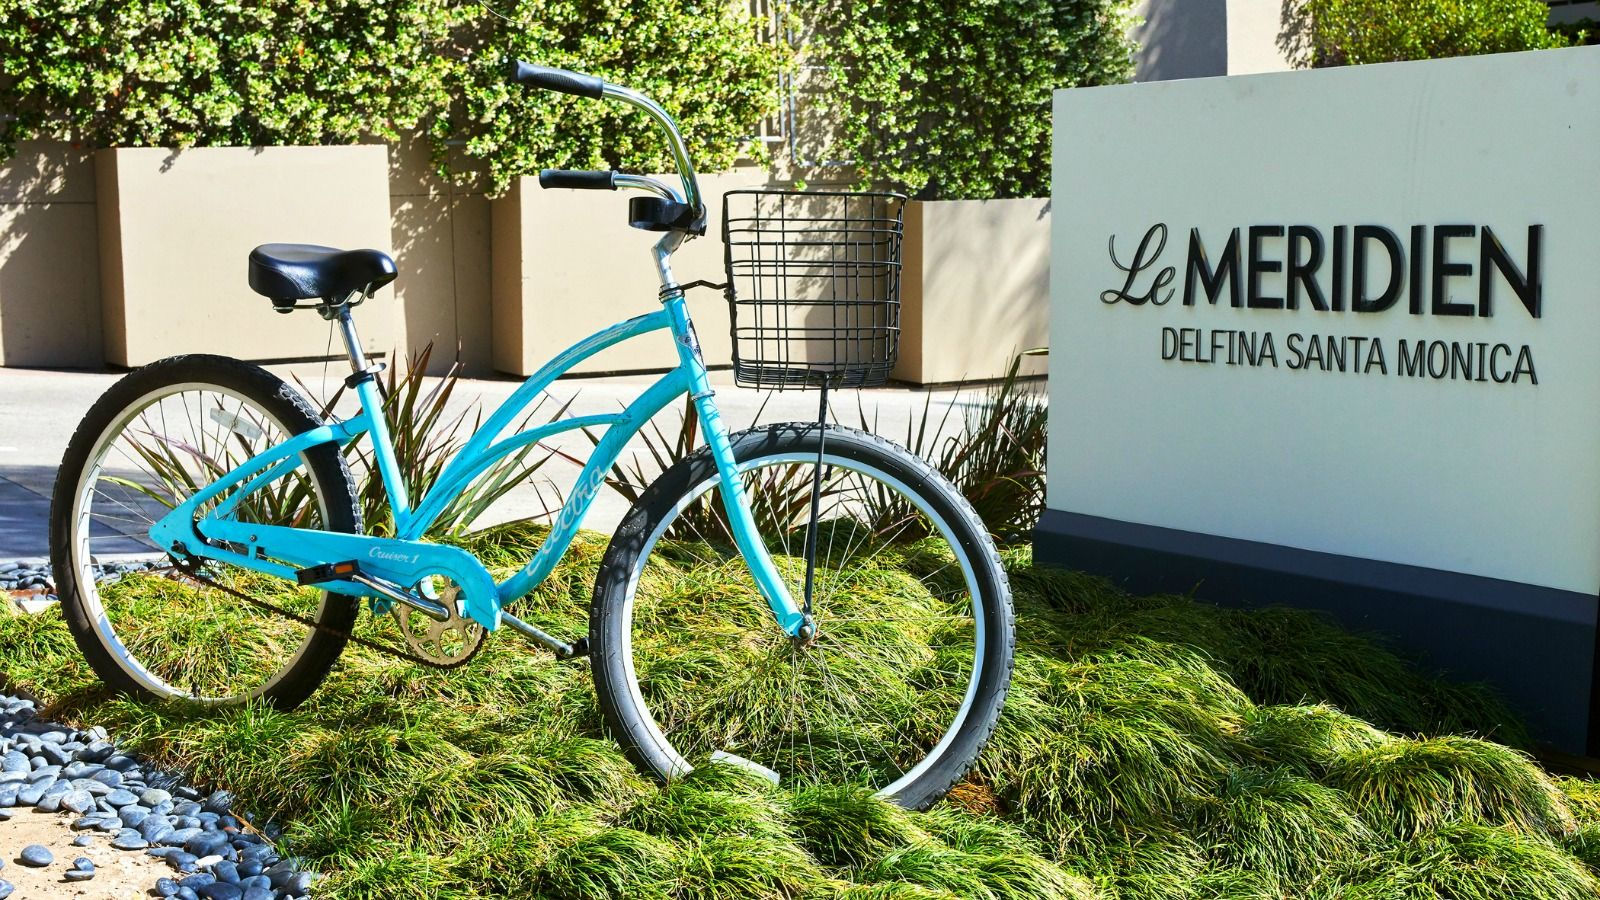 Bicycle Rental |  Le Meridien Delfina Santa Monica